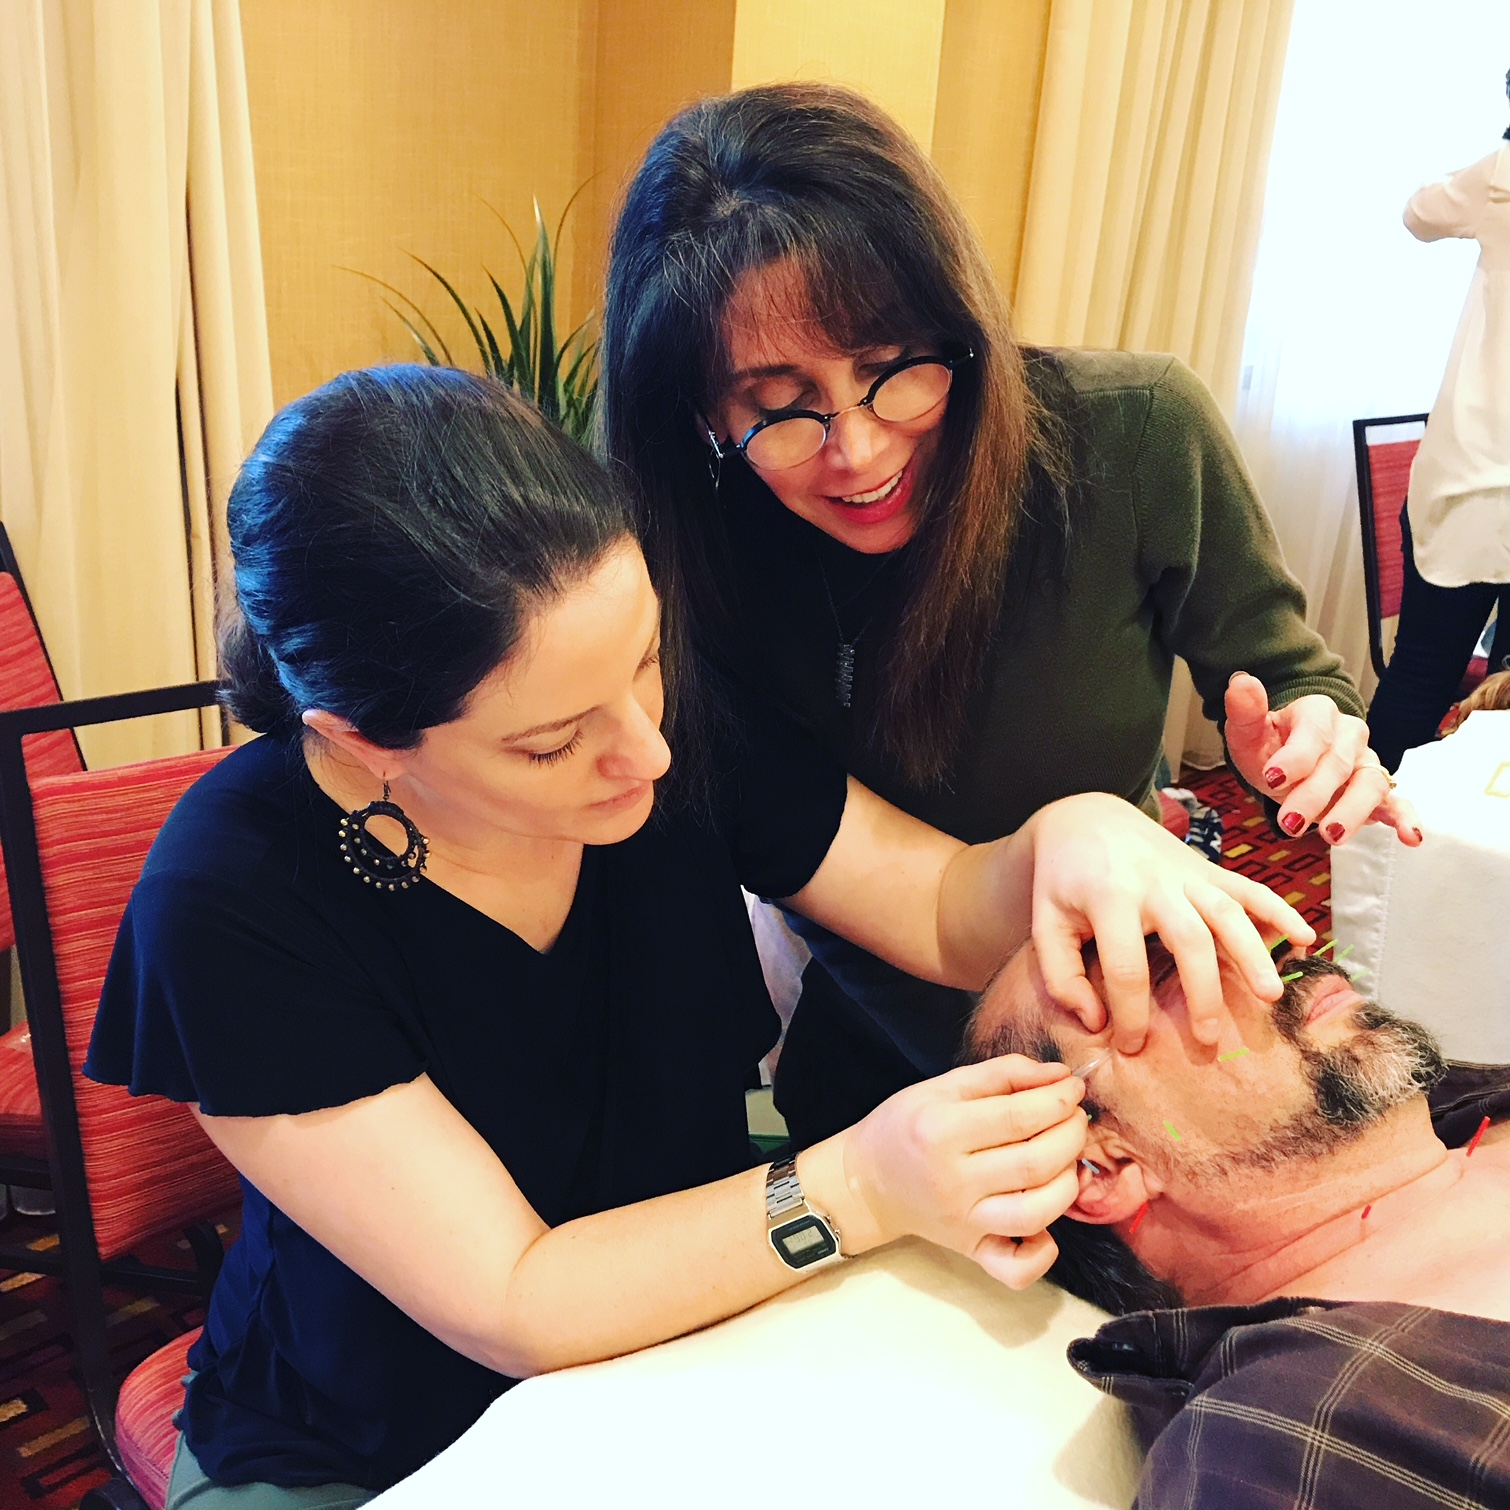 Facial acupuncture training